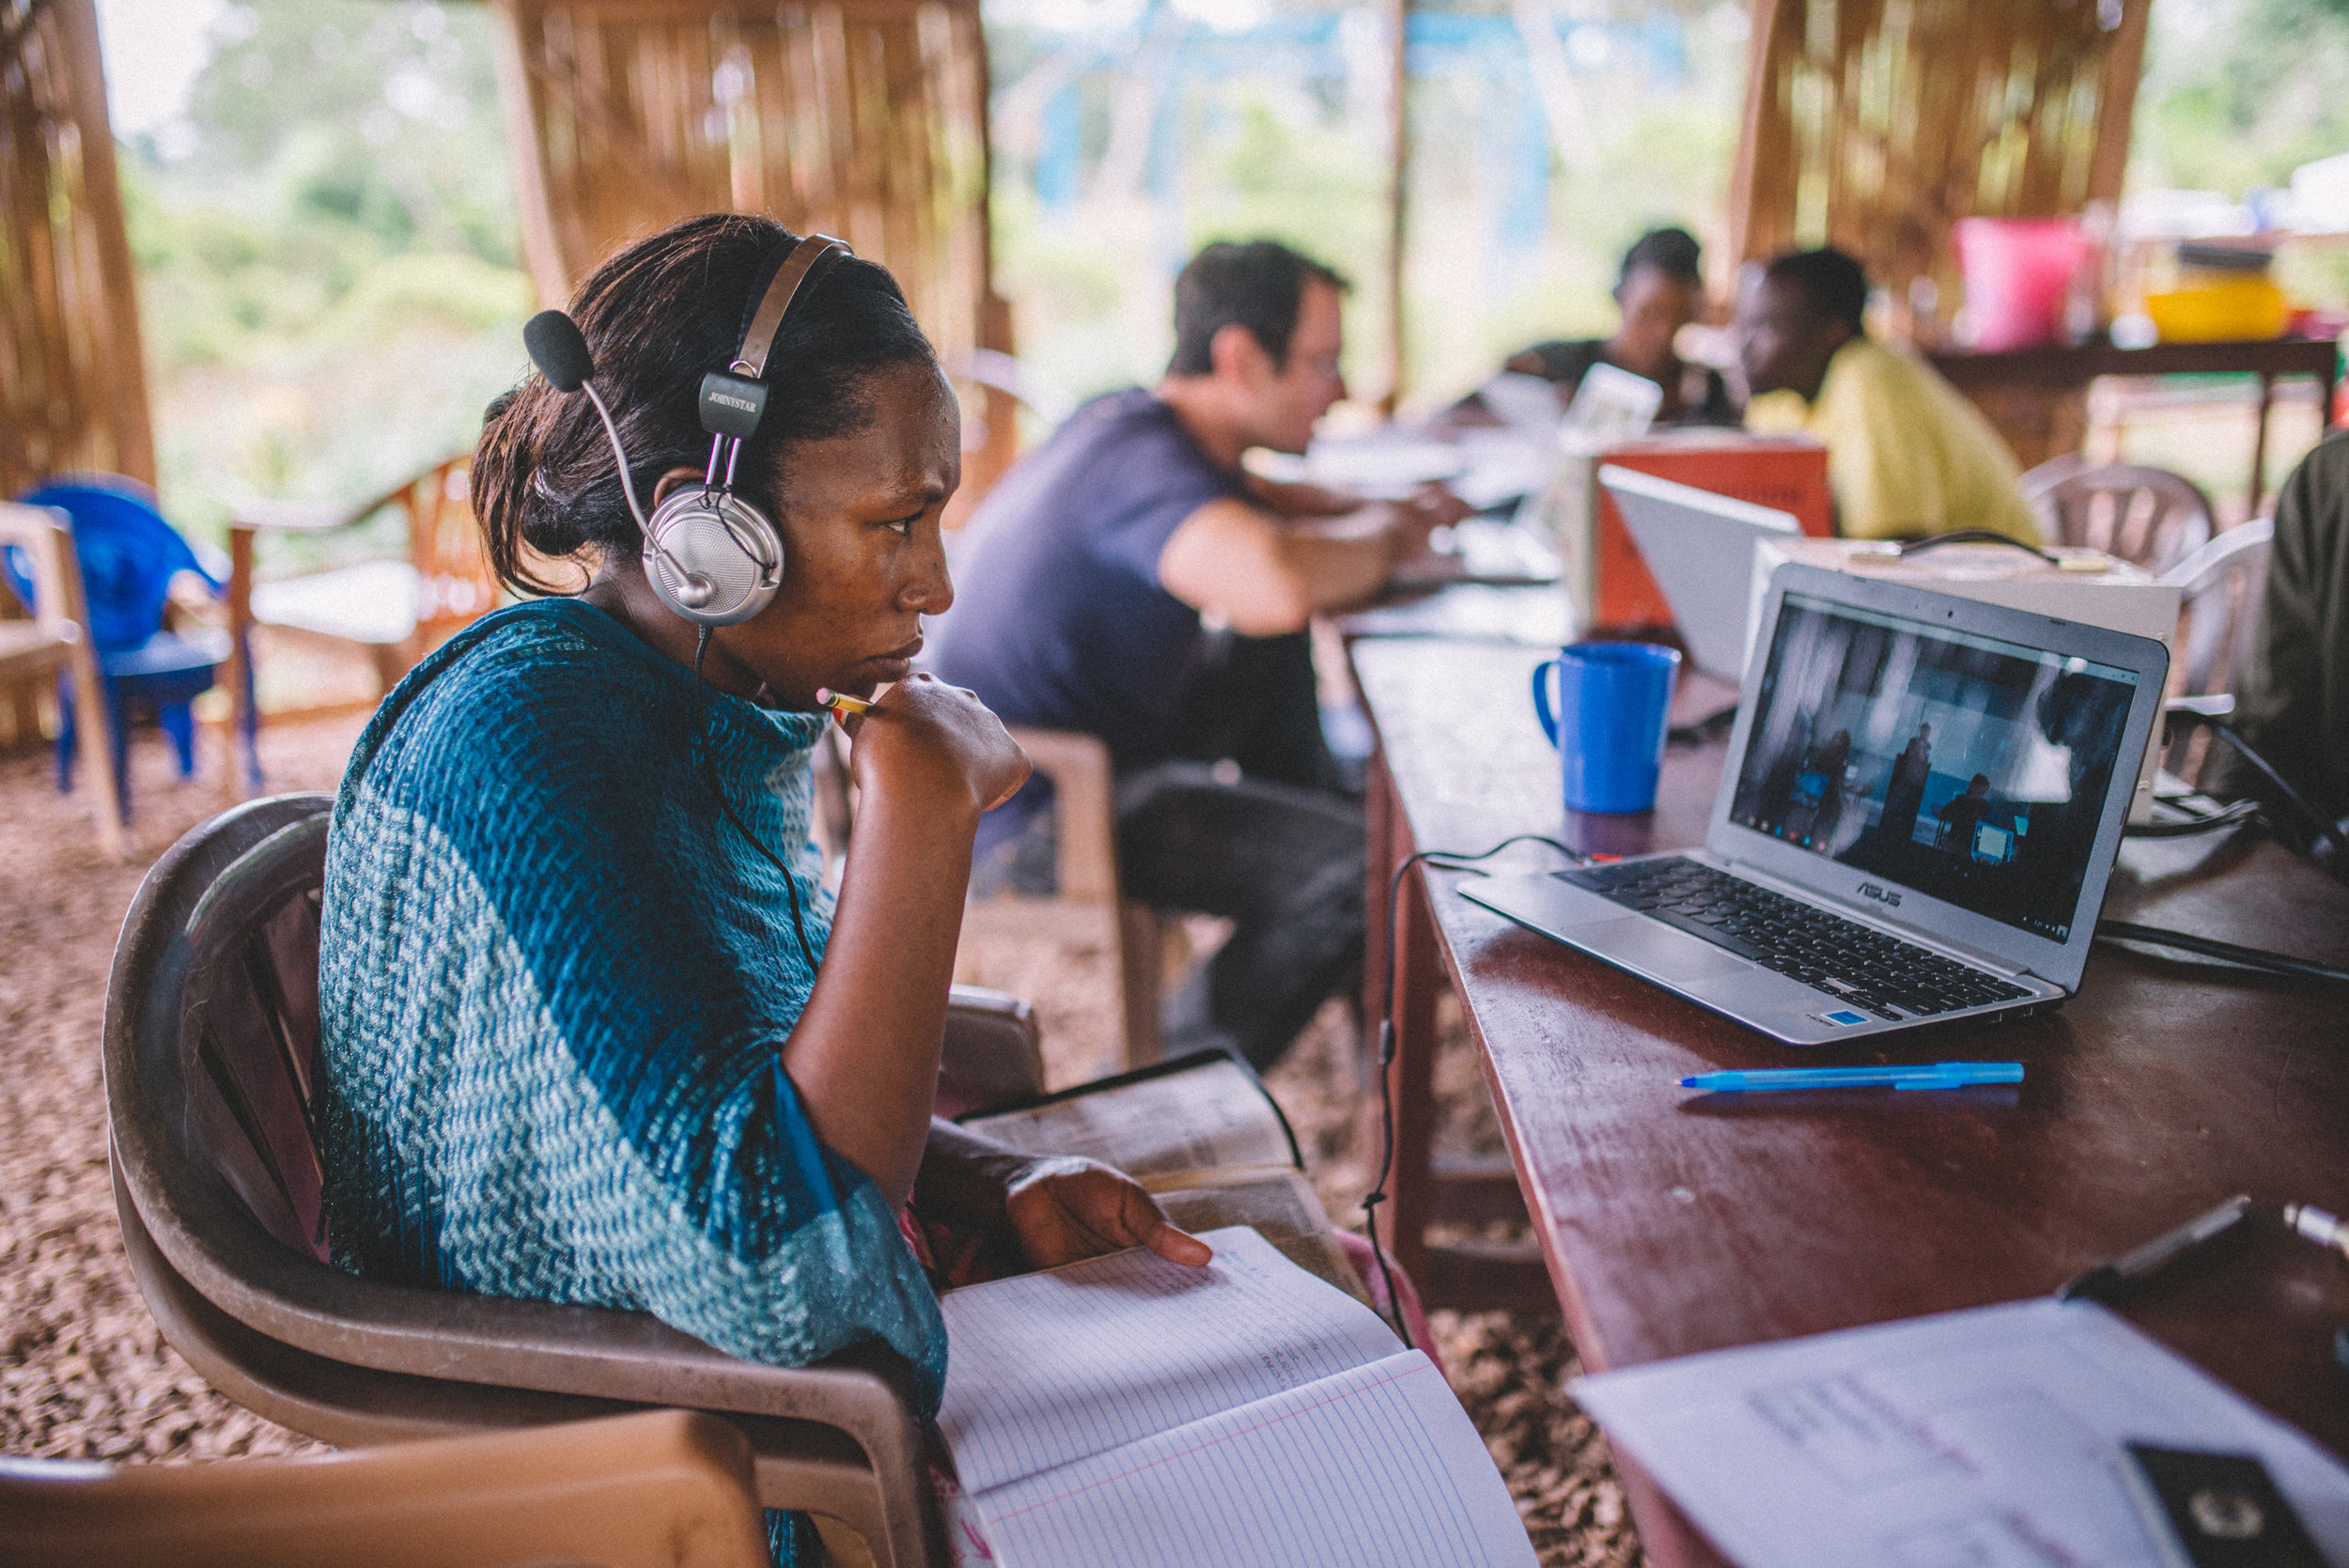 """Annette Nabugo tunes in to her cooperative Bible class """"Biblical Foundations for Ministry,"""" recorded at the Institute for G.O.D. and made available via the internet to her home in rural Uganda. Behind her, Brandon Galford, a Bible teacher, meets with other students to review the material."""